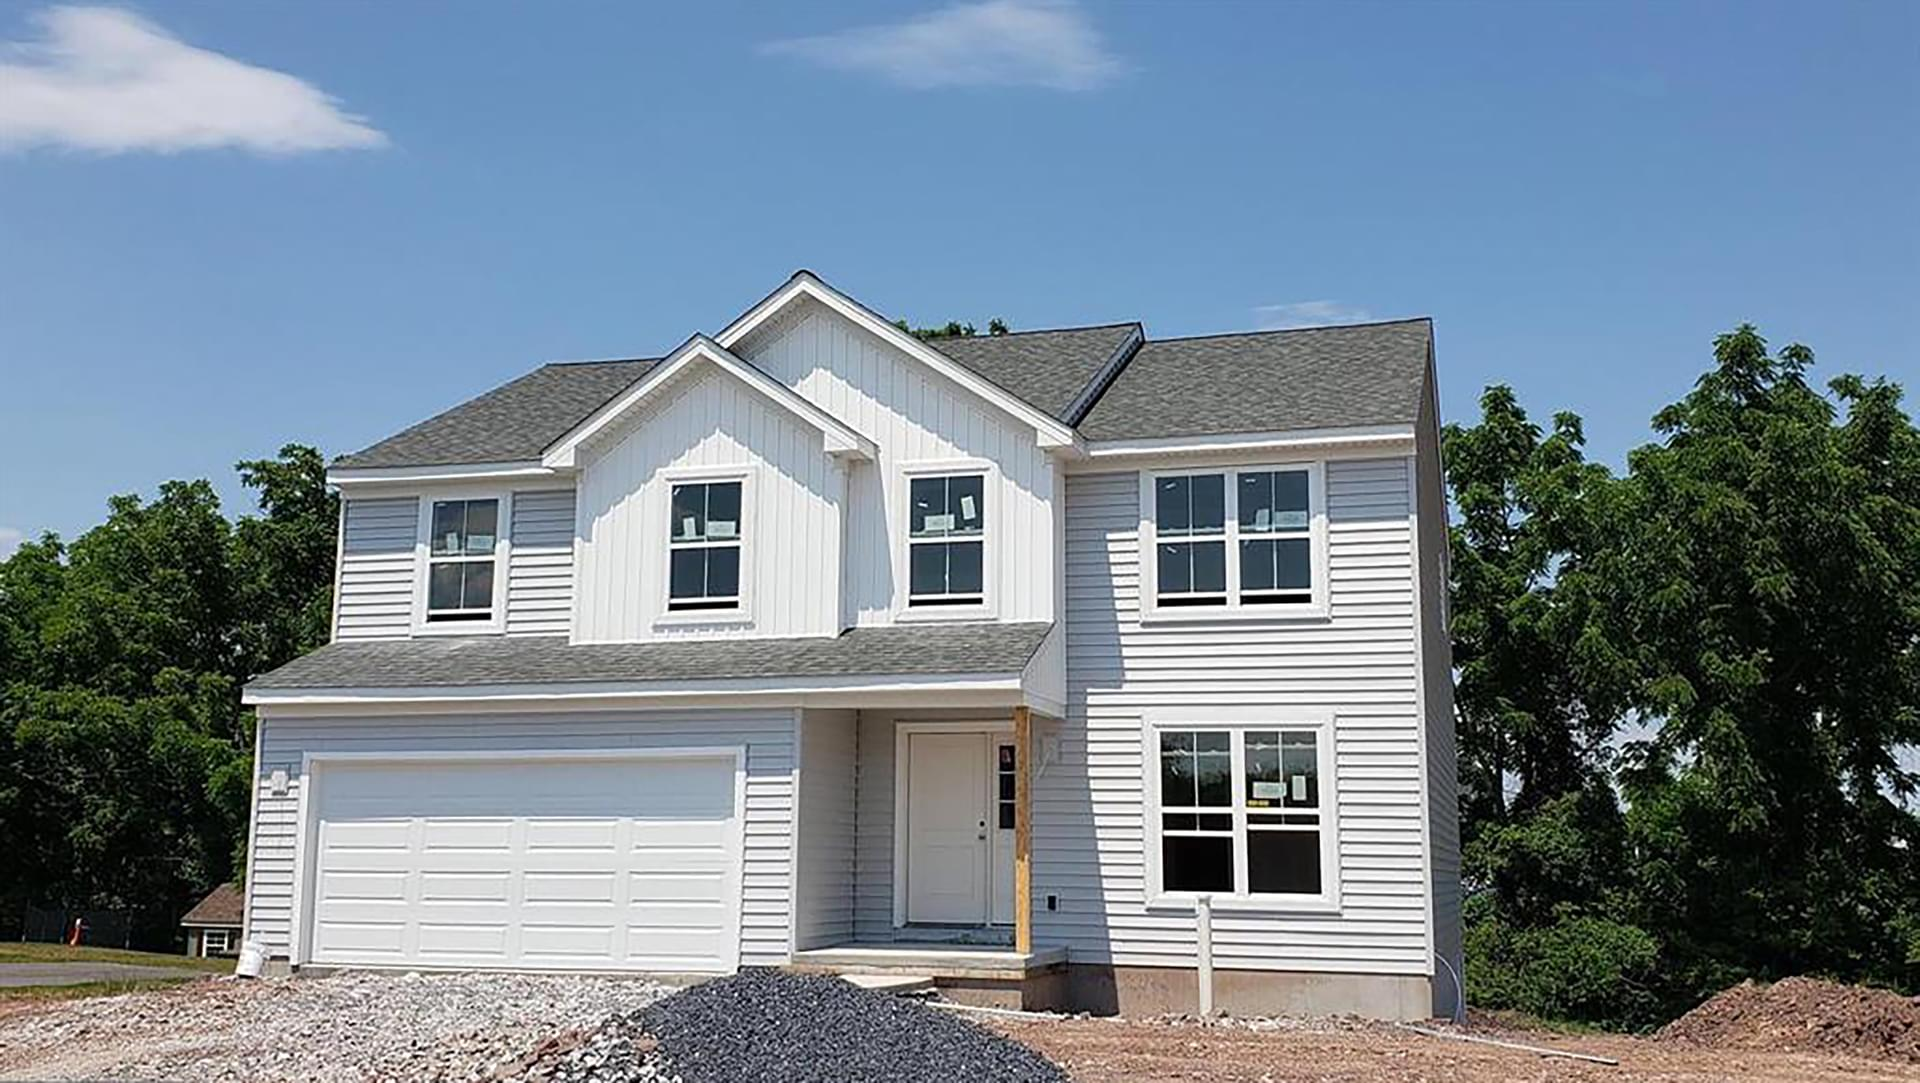 Berks Homes in Lot #87 - 87 Jessica Dr, East Berlin, PA 17316 PA